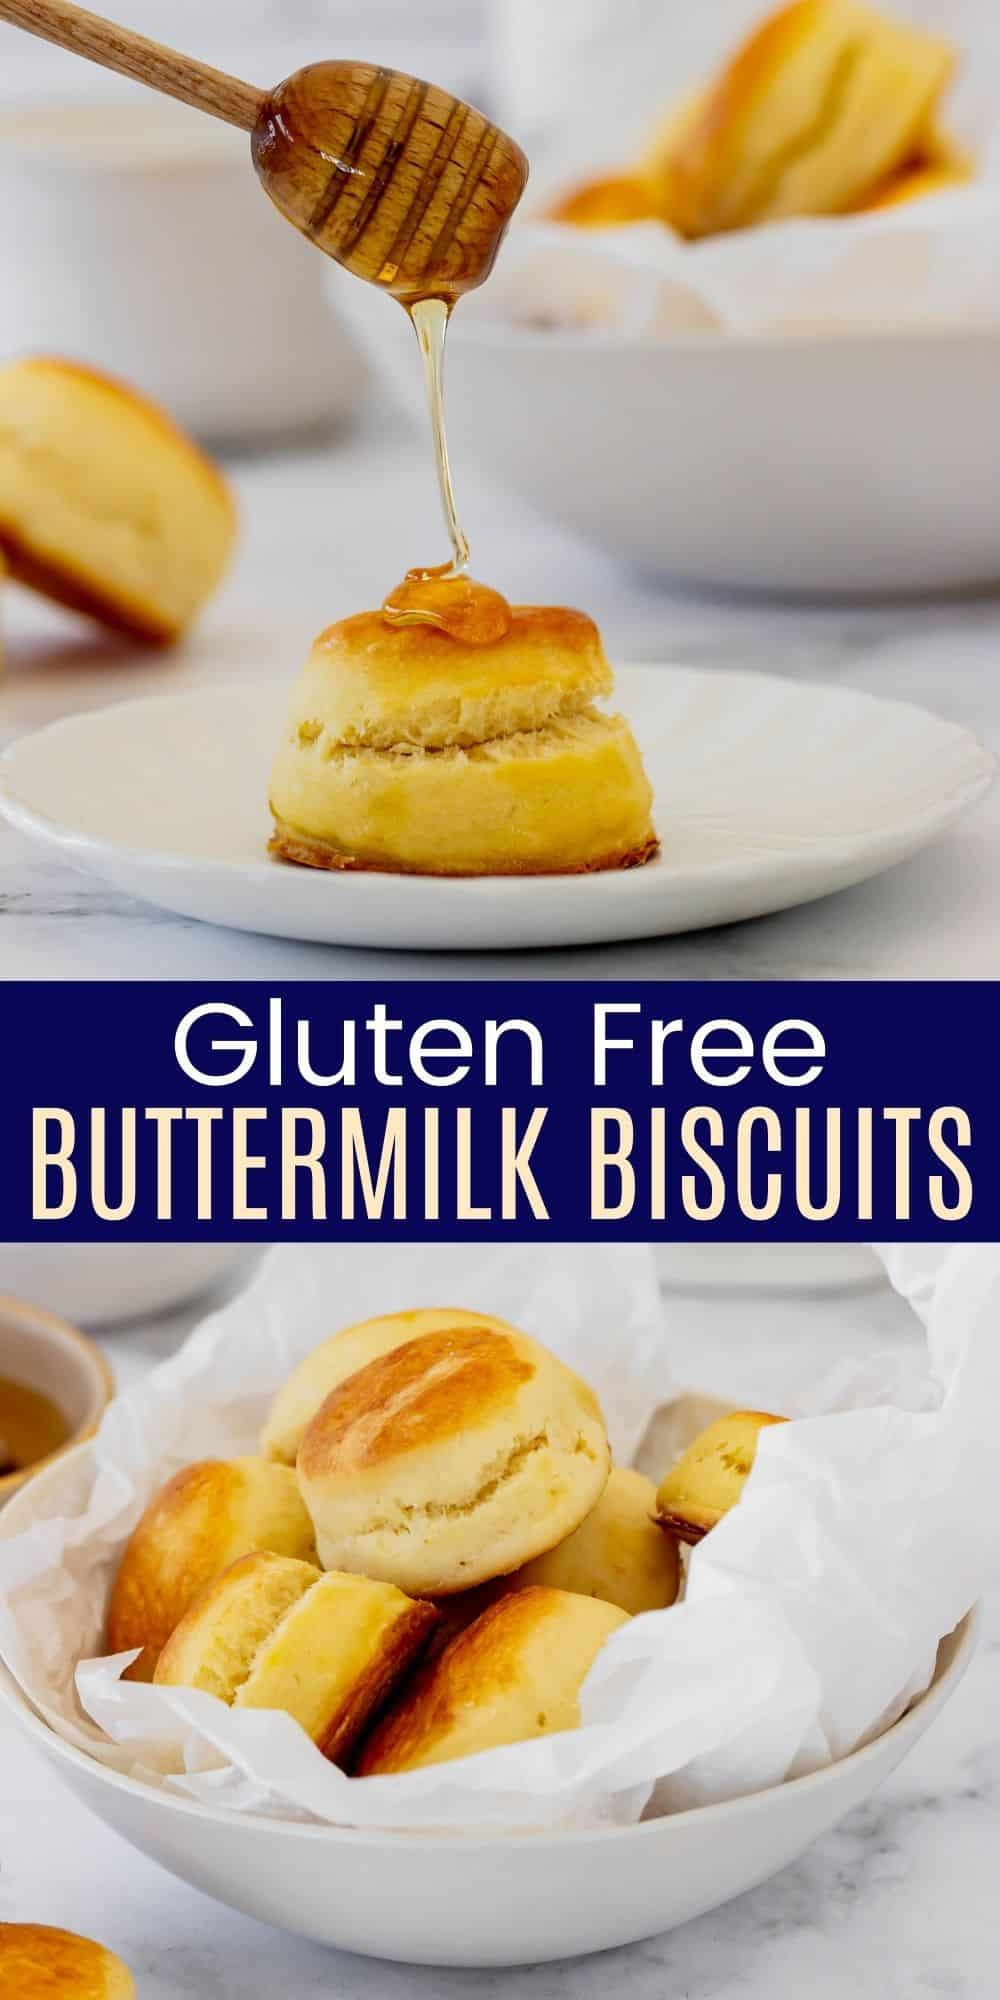 honey dripping onto a biscuit and a wax paper-lined bowl full of gluten free biscuits